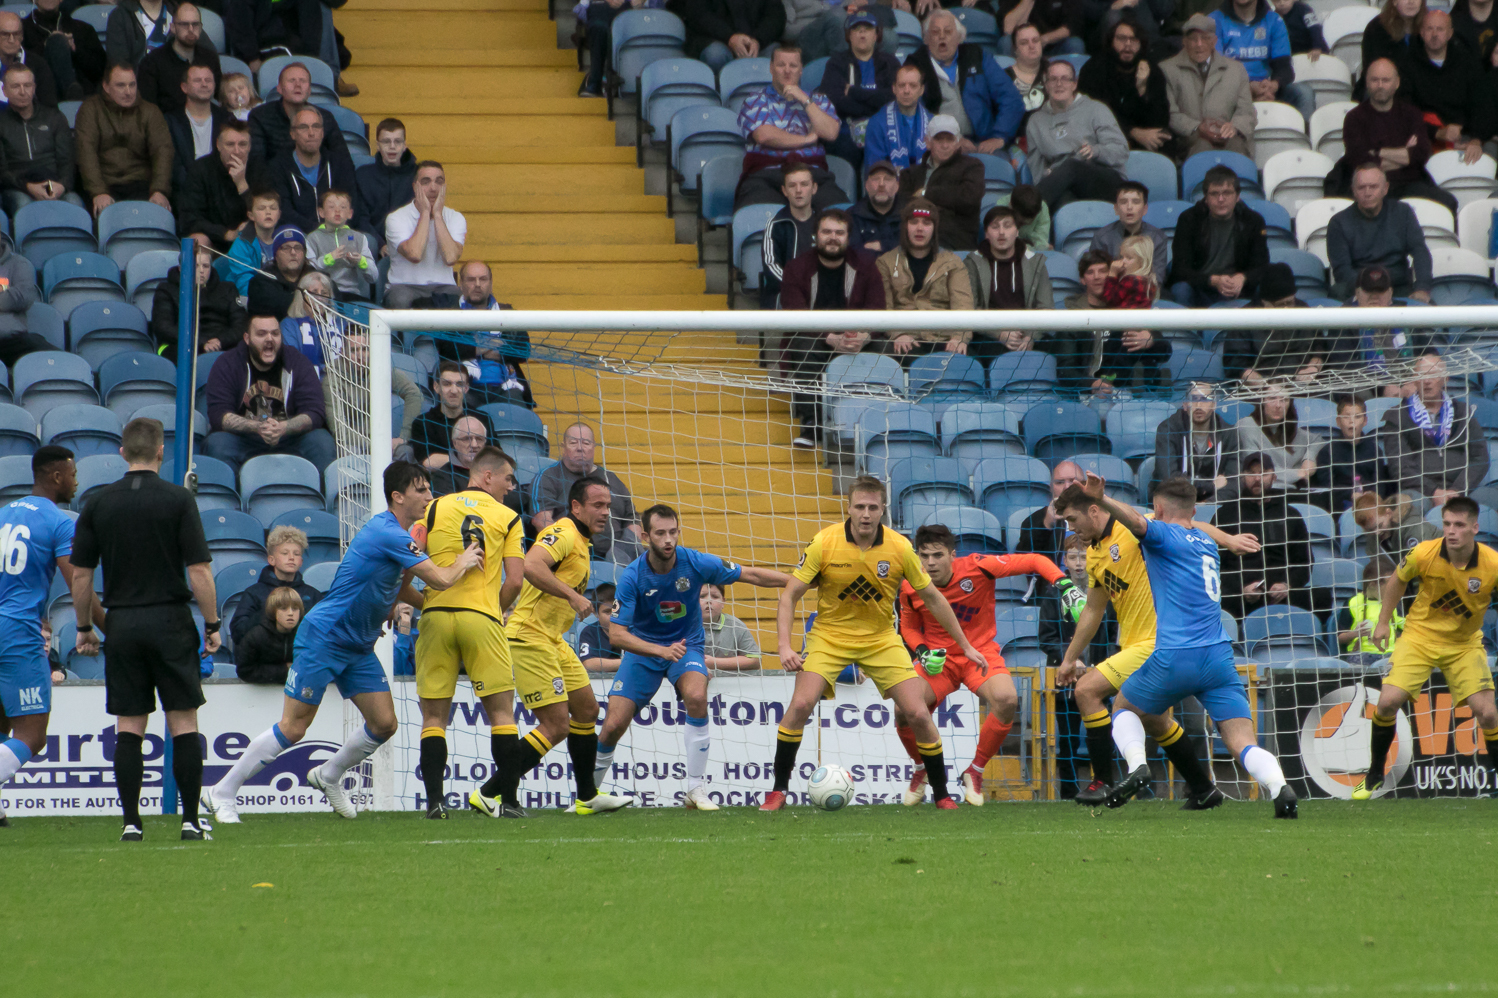 Ethan Wassall clears any danger for Hereford at Stockport. Picture: Andy Walkden